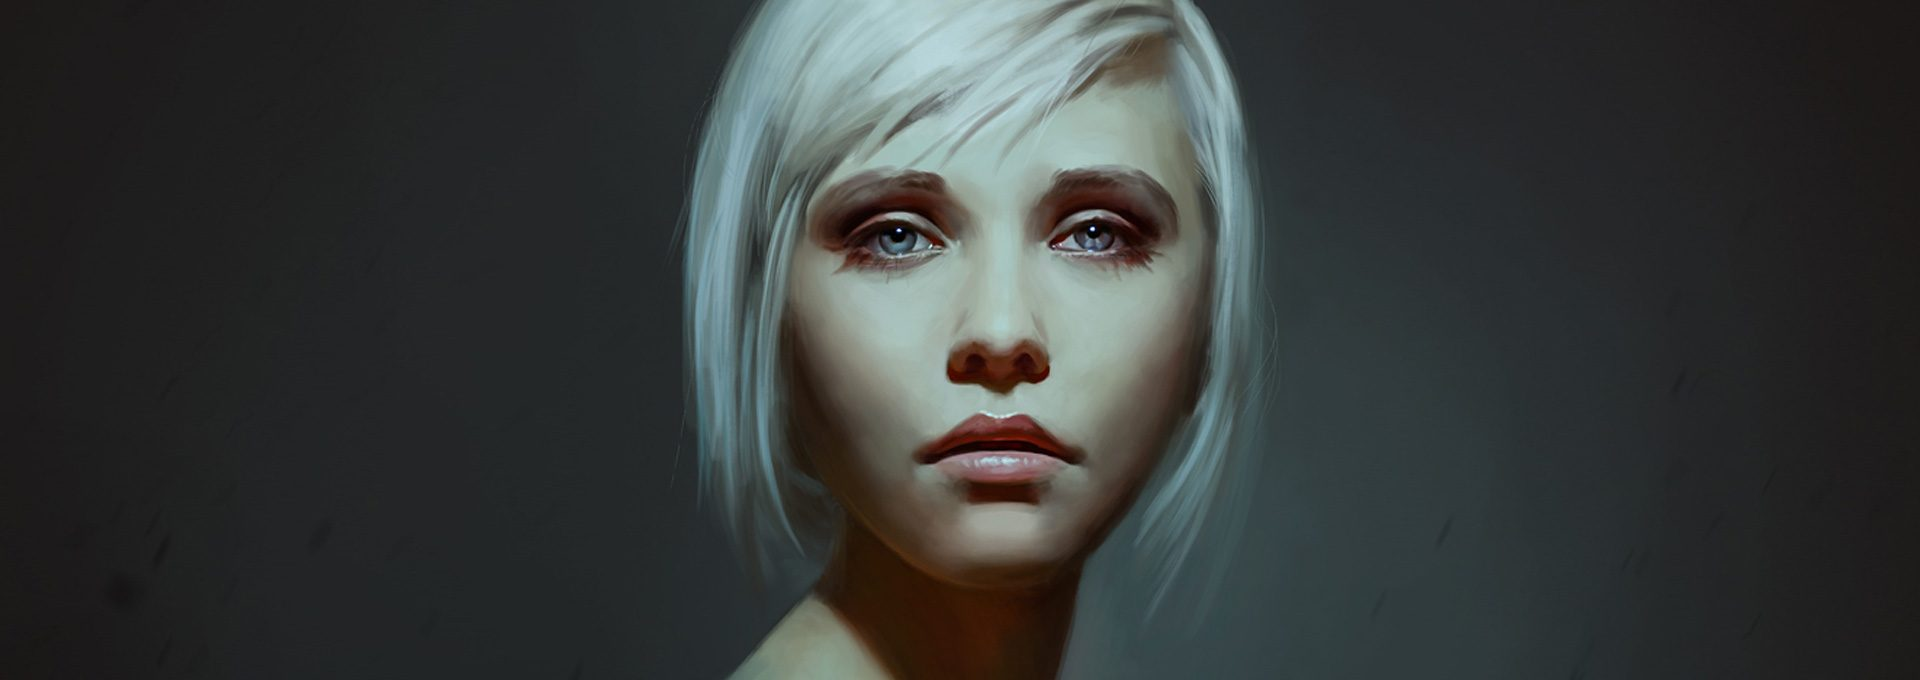 50 Breaktaking Digital Painting Portraits